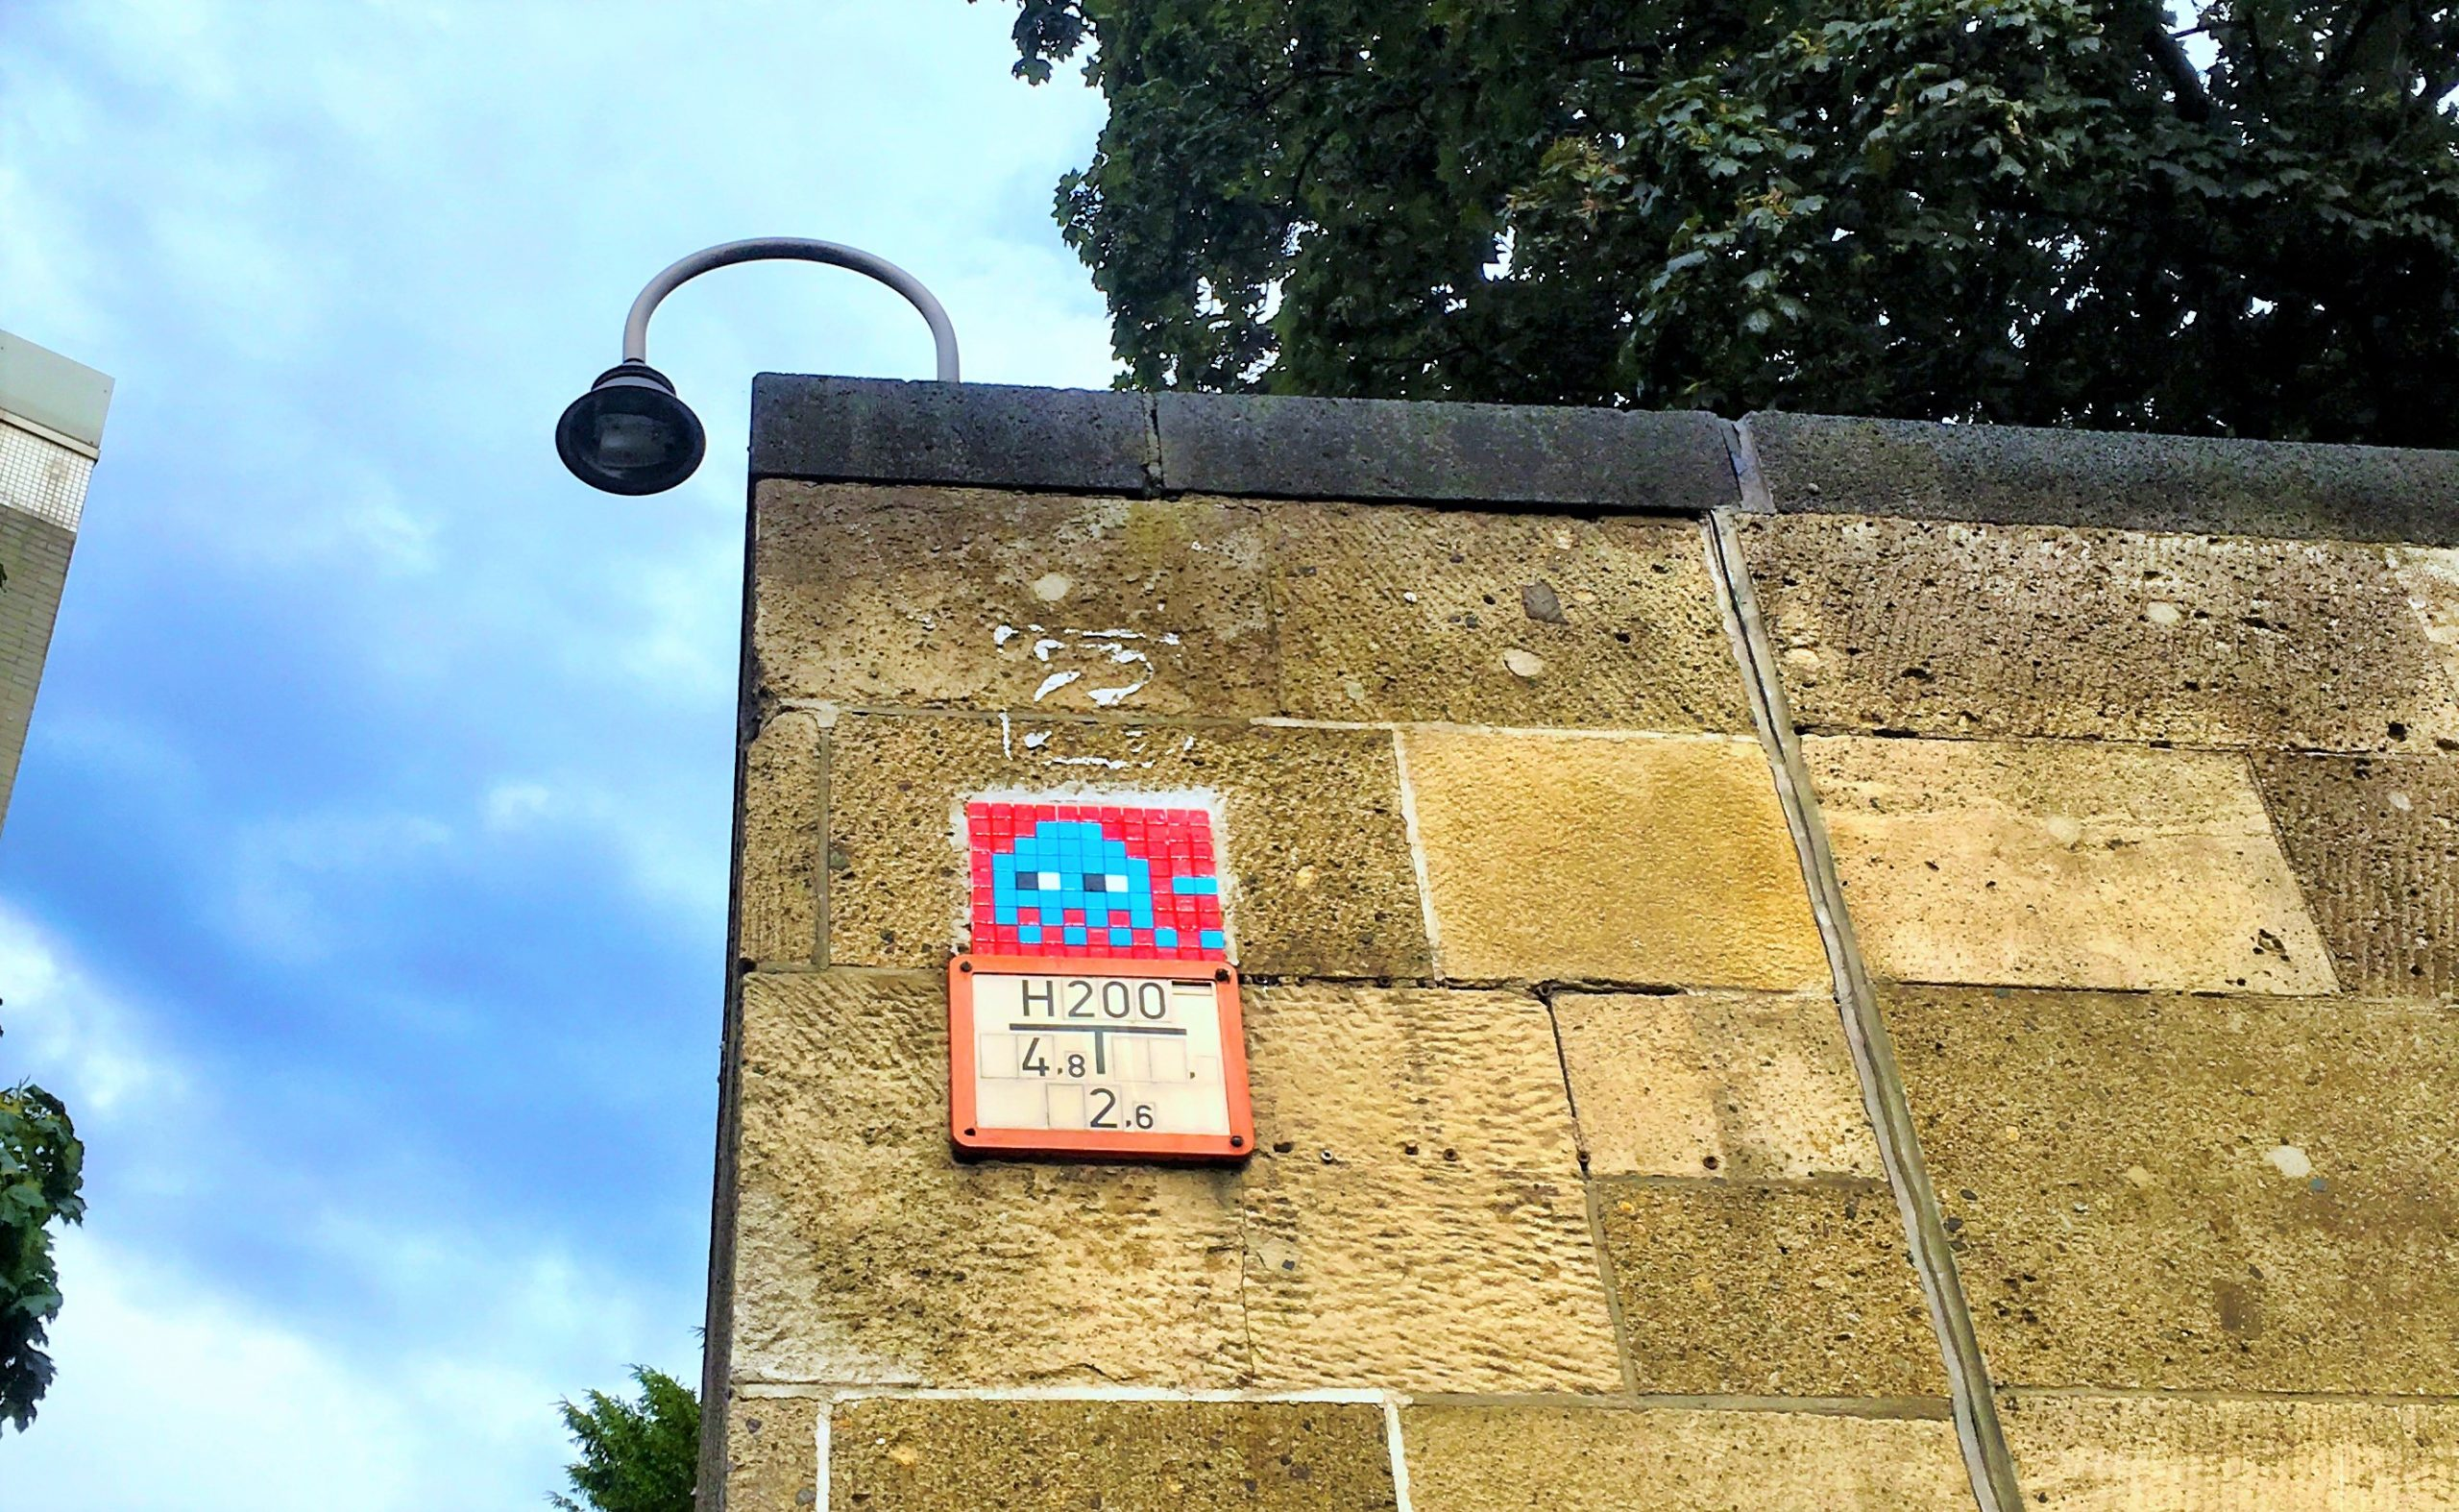 SPACE INVADER by @invaderwashere